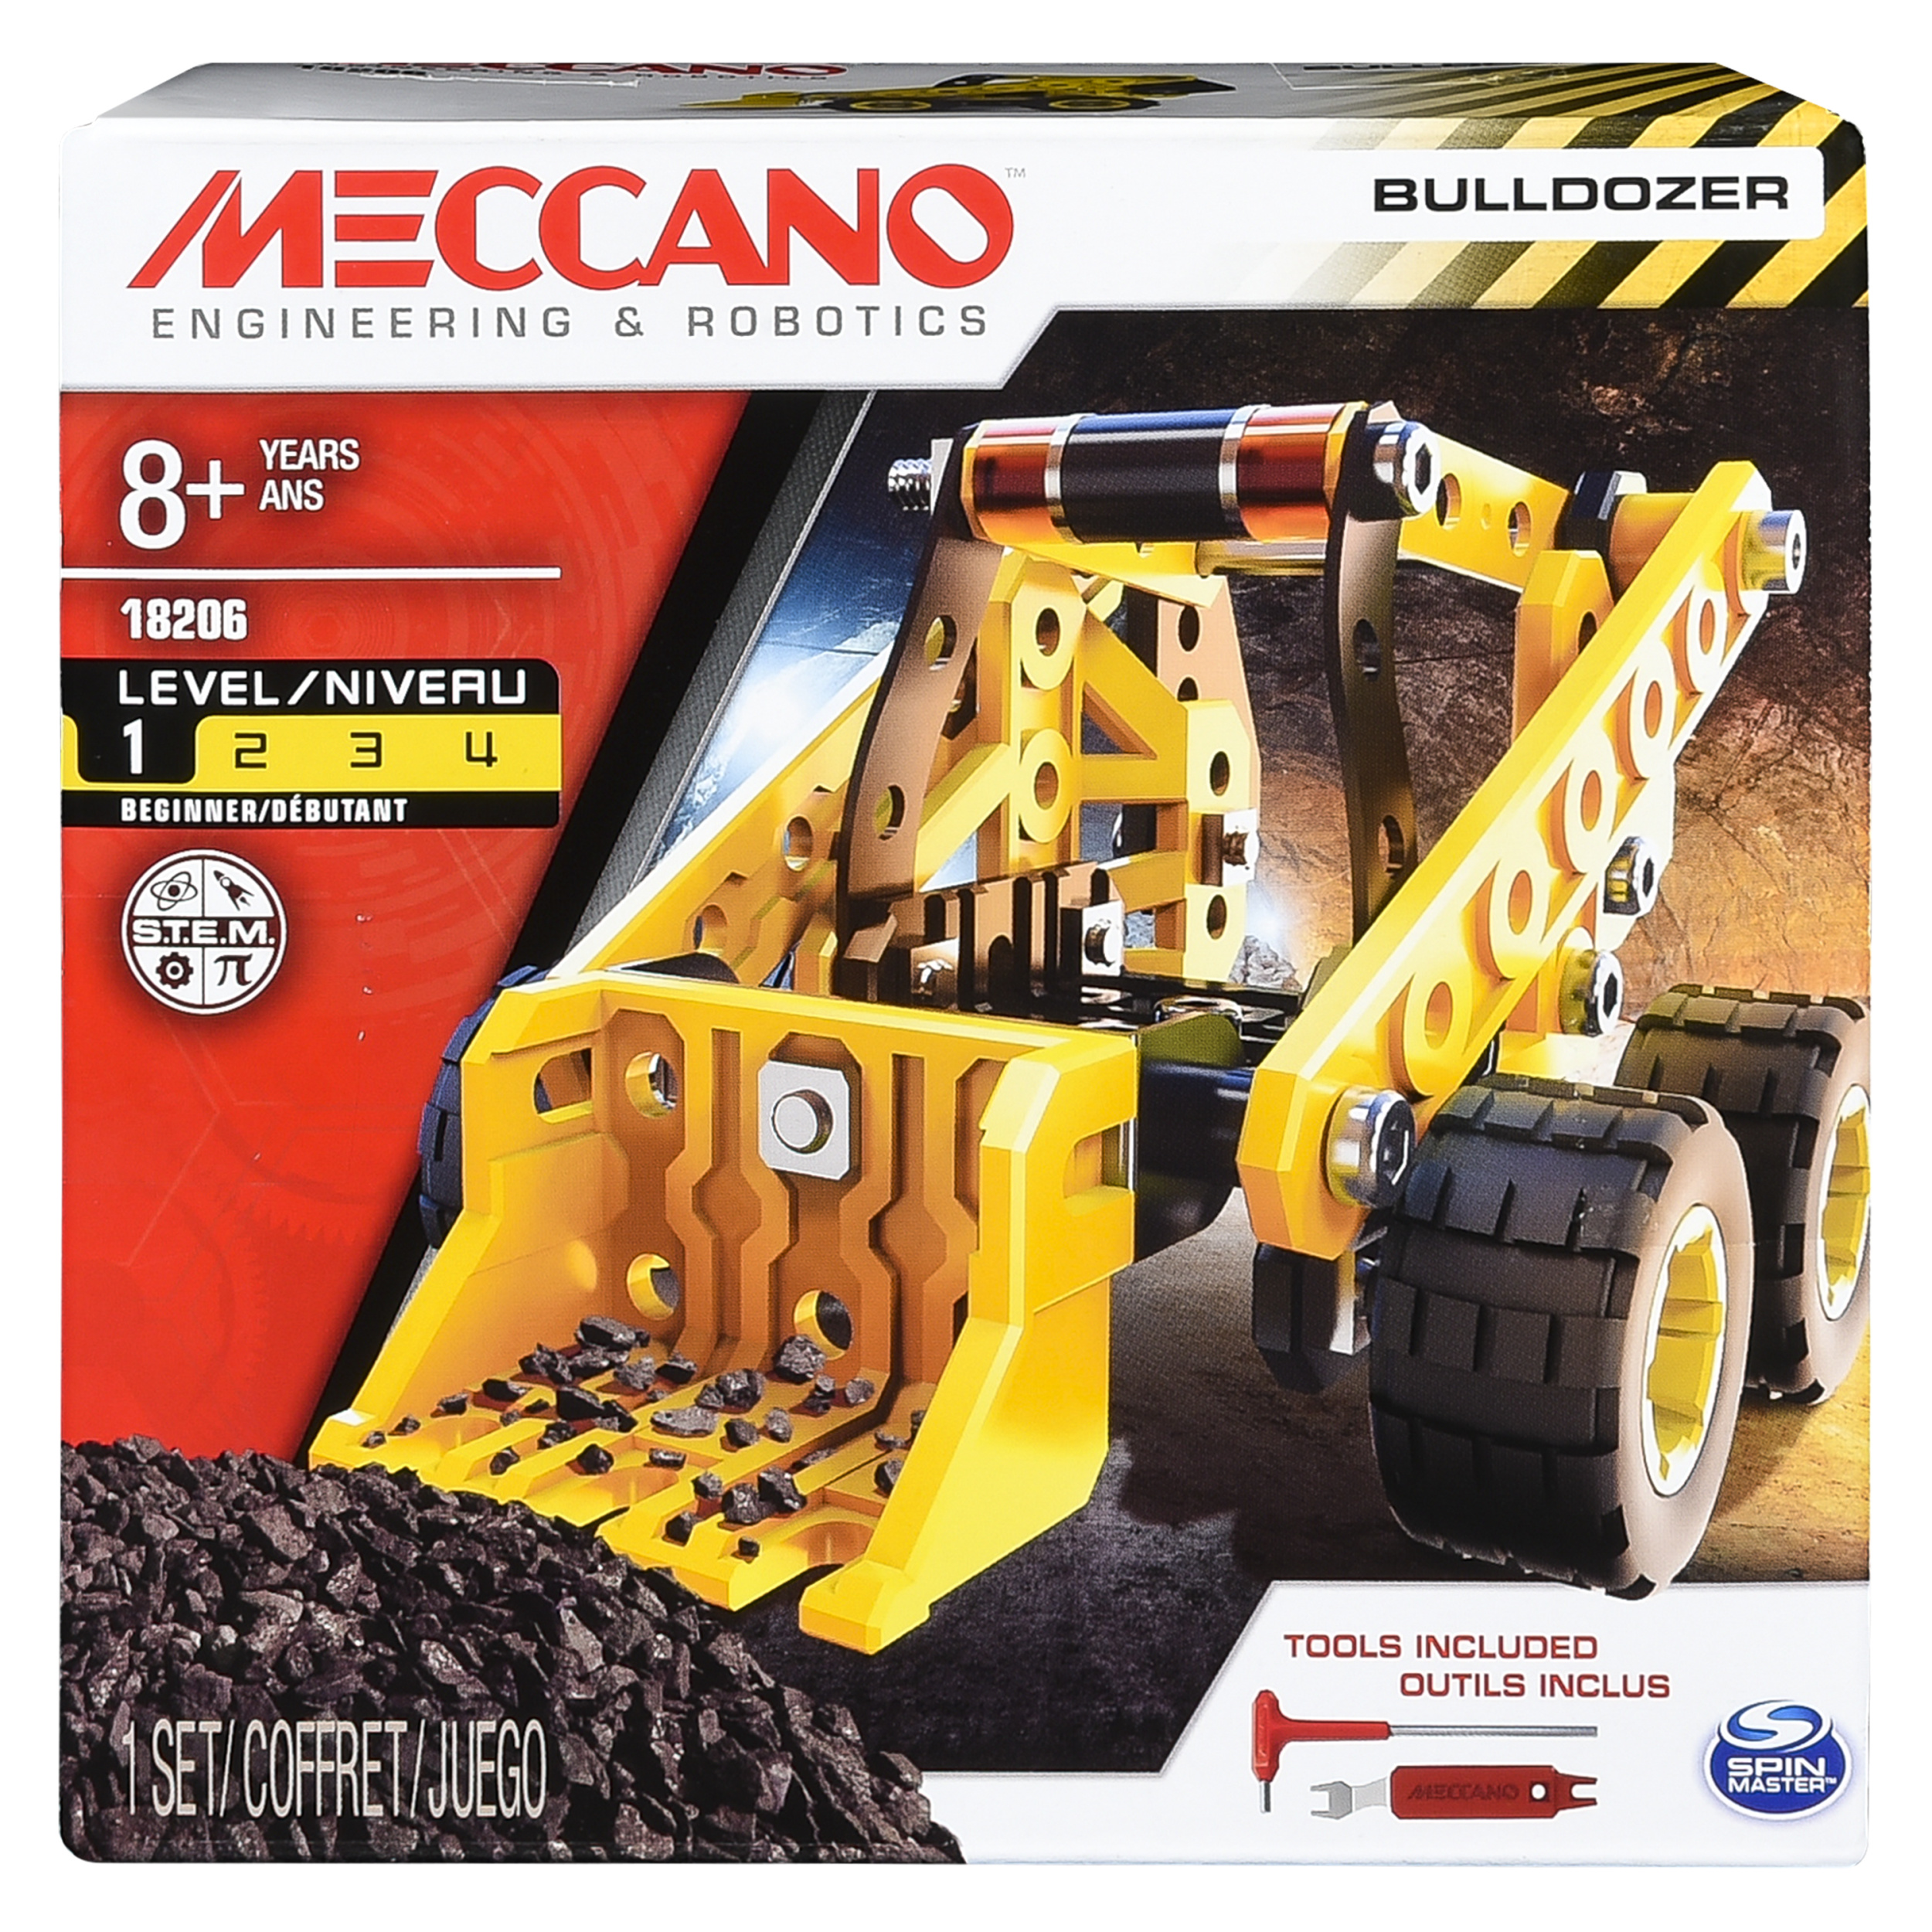 Meccano by Erector, Bulldozer Model Vehicle Building Kit, STEM Engineering Education Toy for Ages 8 and up